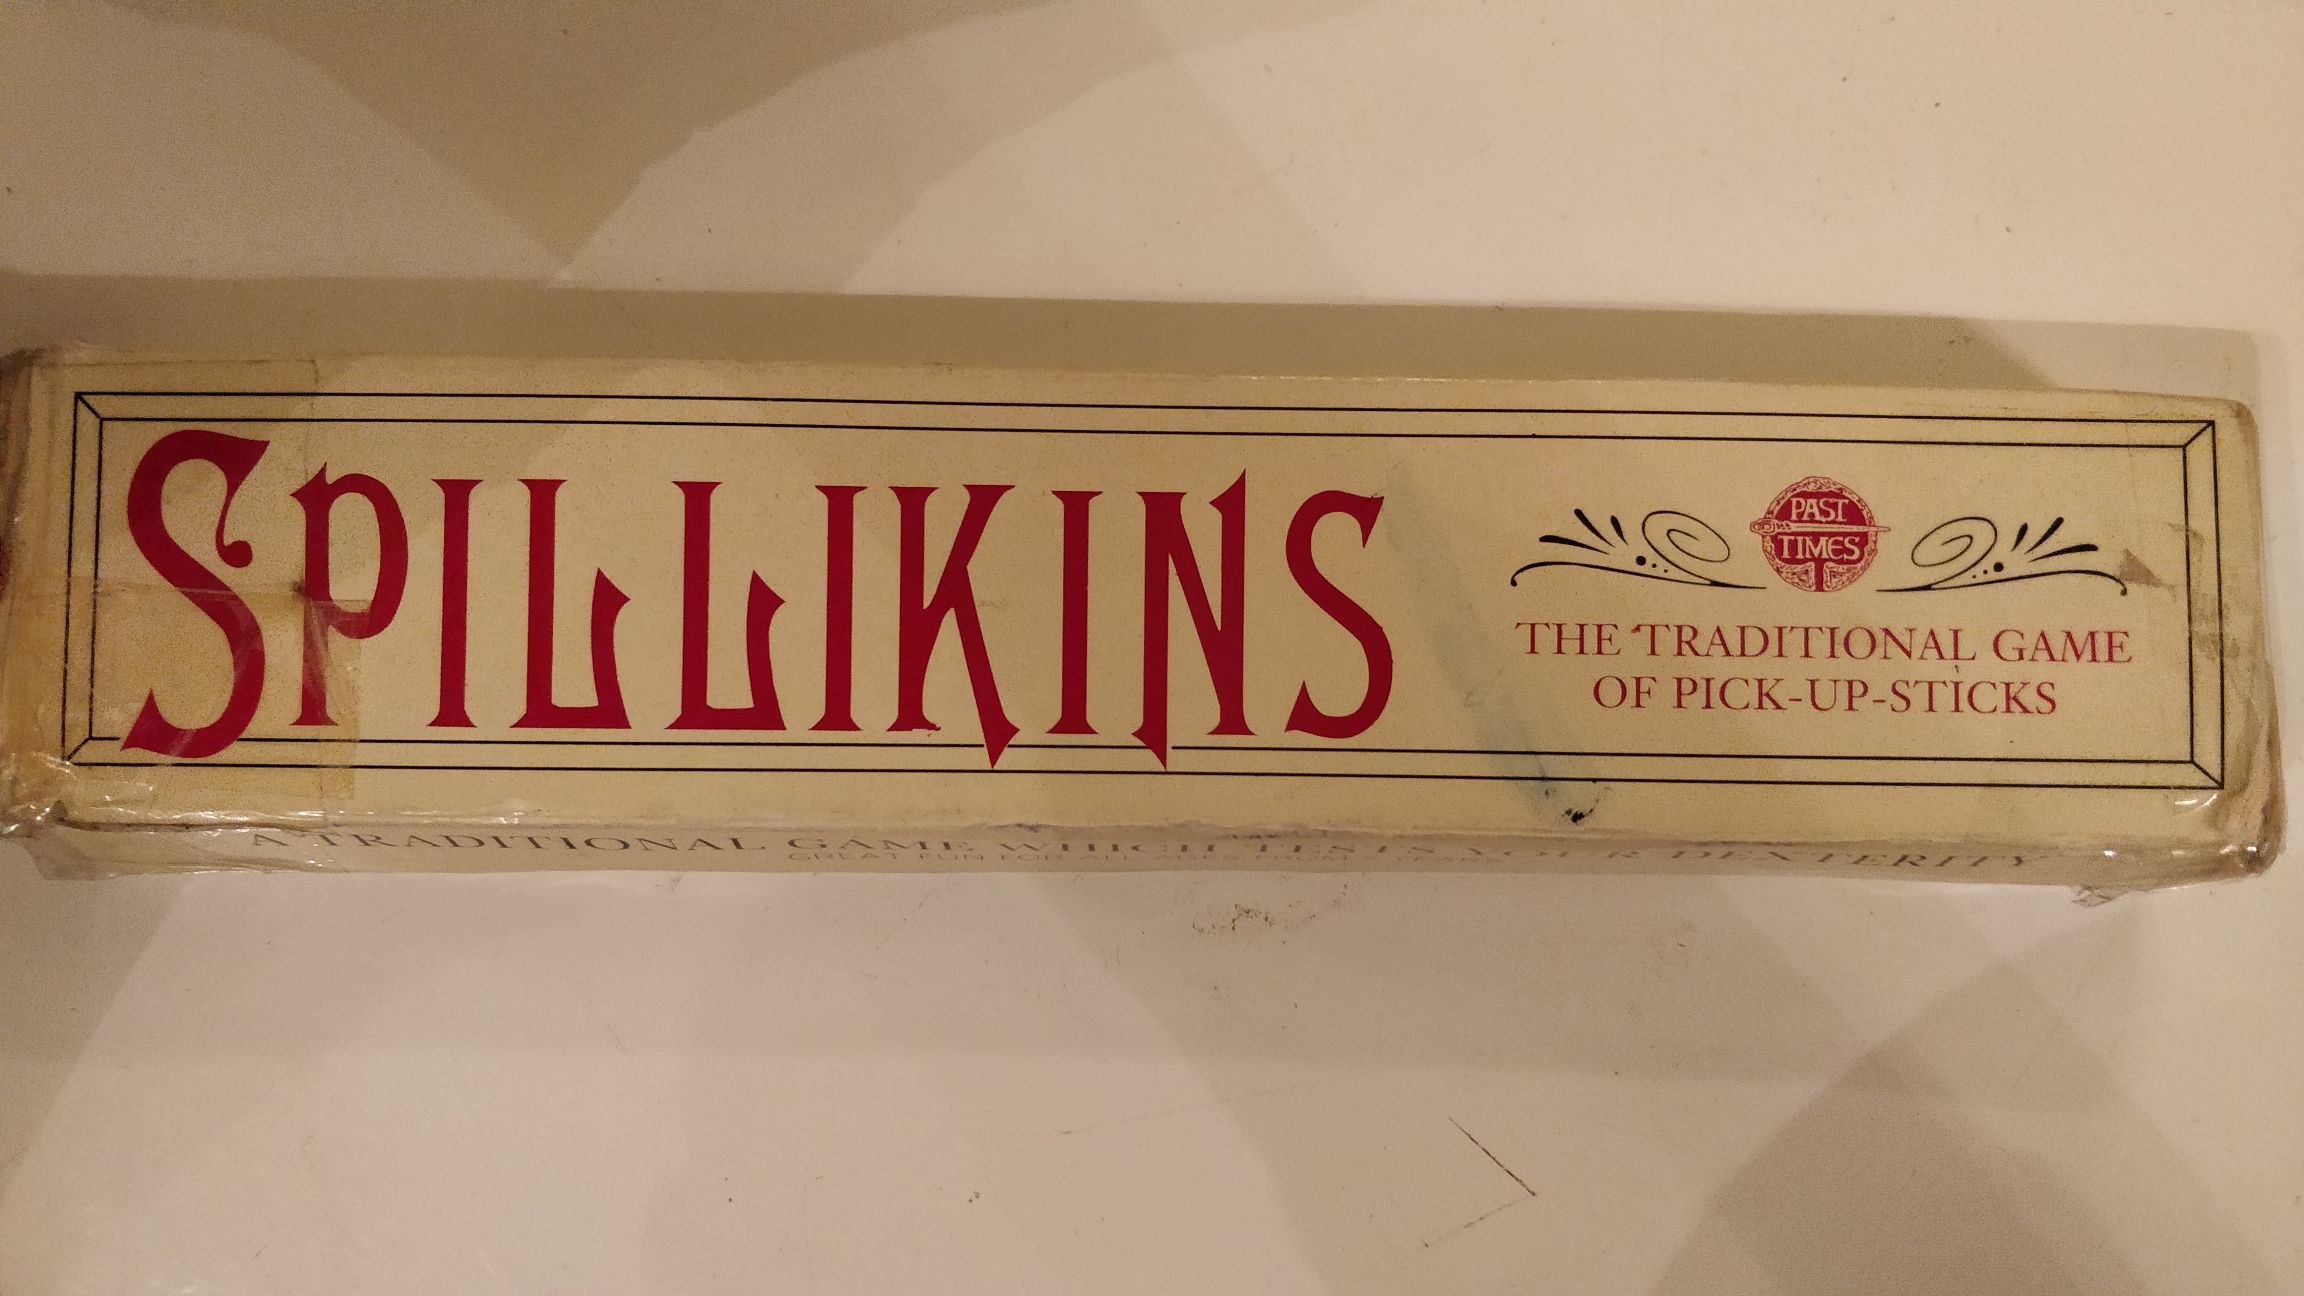 Spillikins Board Game - Past times (Building) front image (front cover)